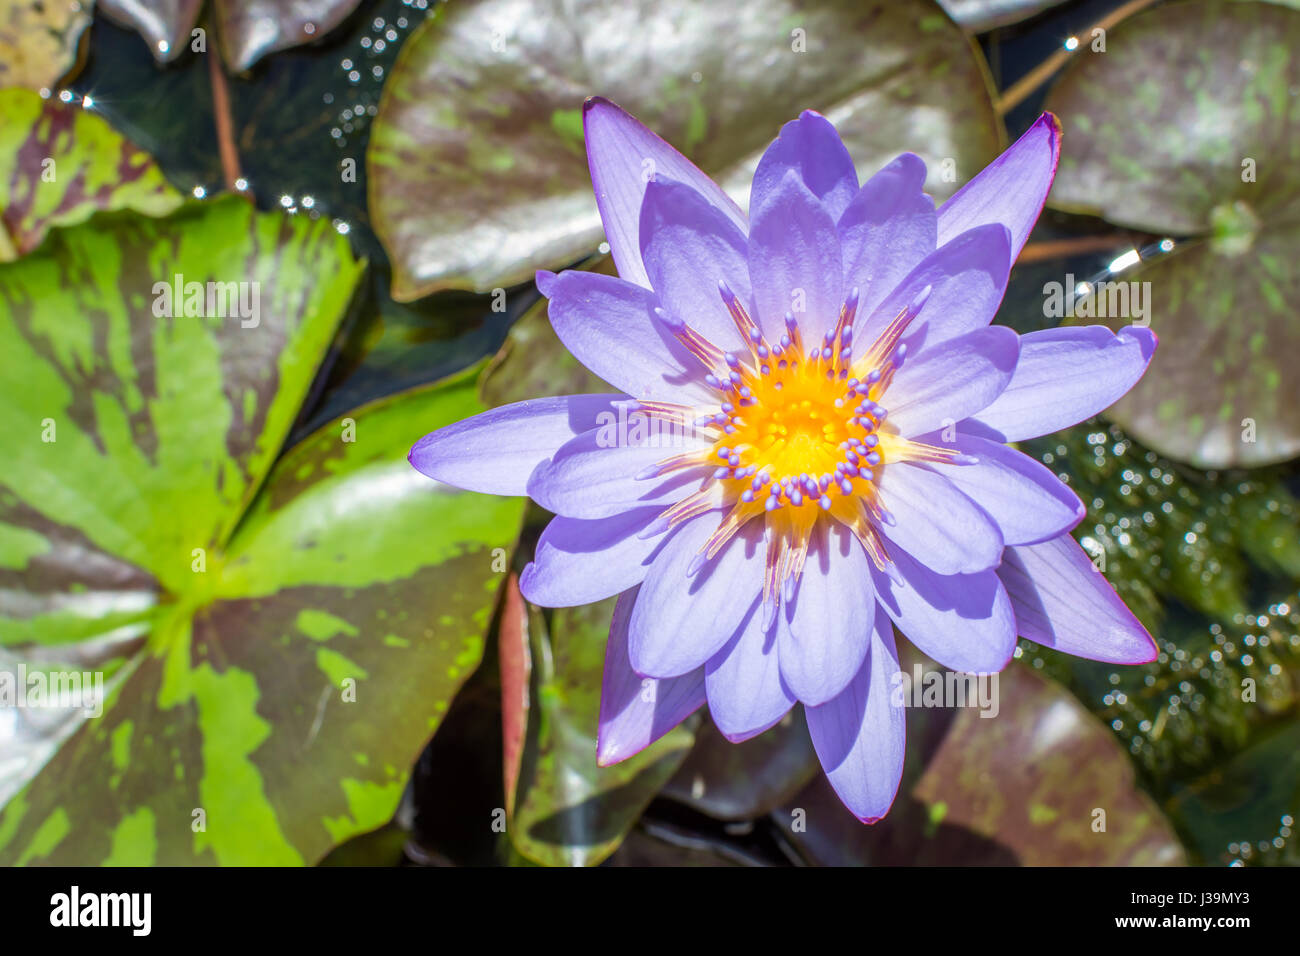 Sacred narcotic lily of the nile stock photos sacred narcotic lily a blue lotus also known as the blue egyptian lotus sprouting from lily pads izmirmasajfo